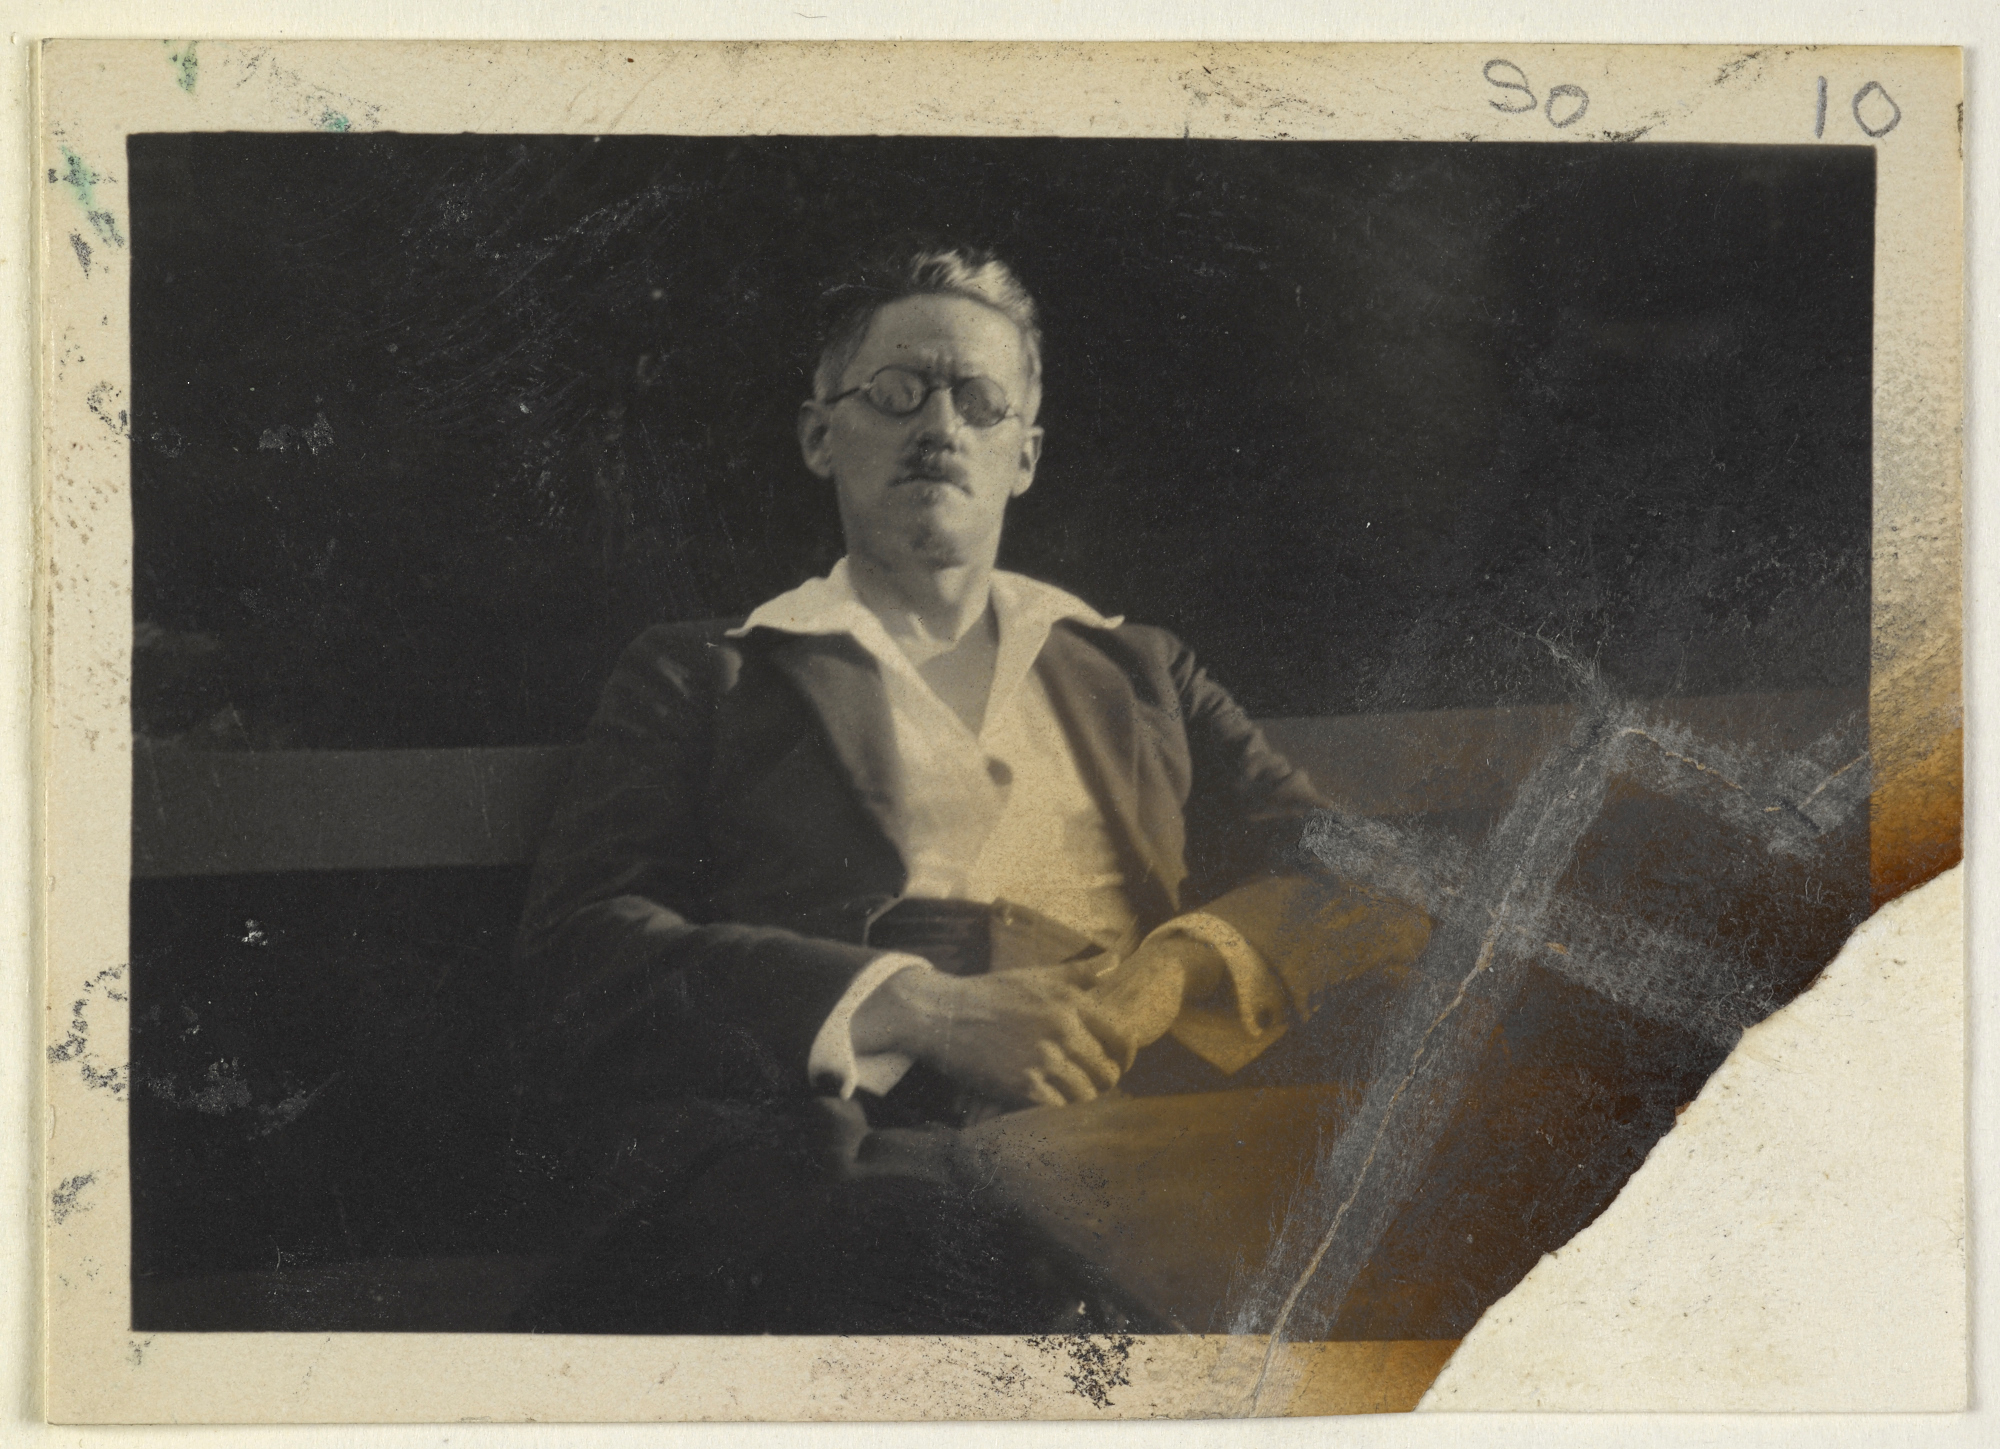 Photograph-of-James-Joyce-This-material-is-in-the-Public-Domain